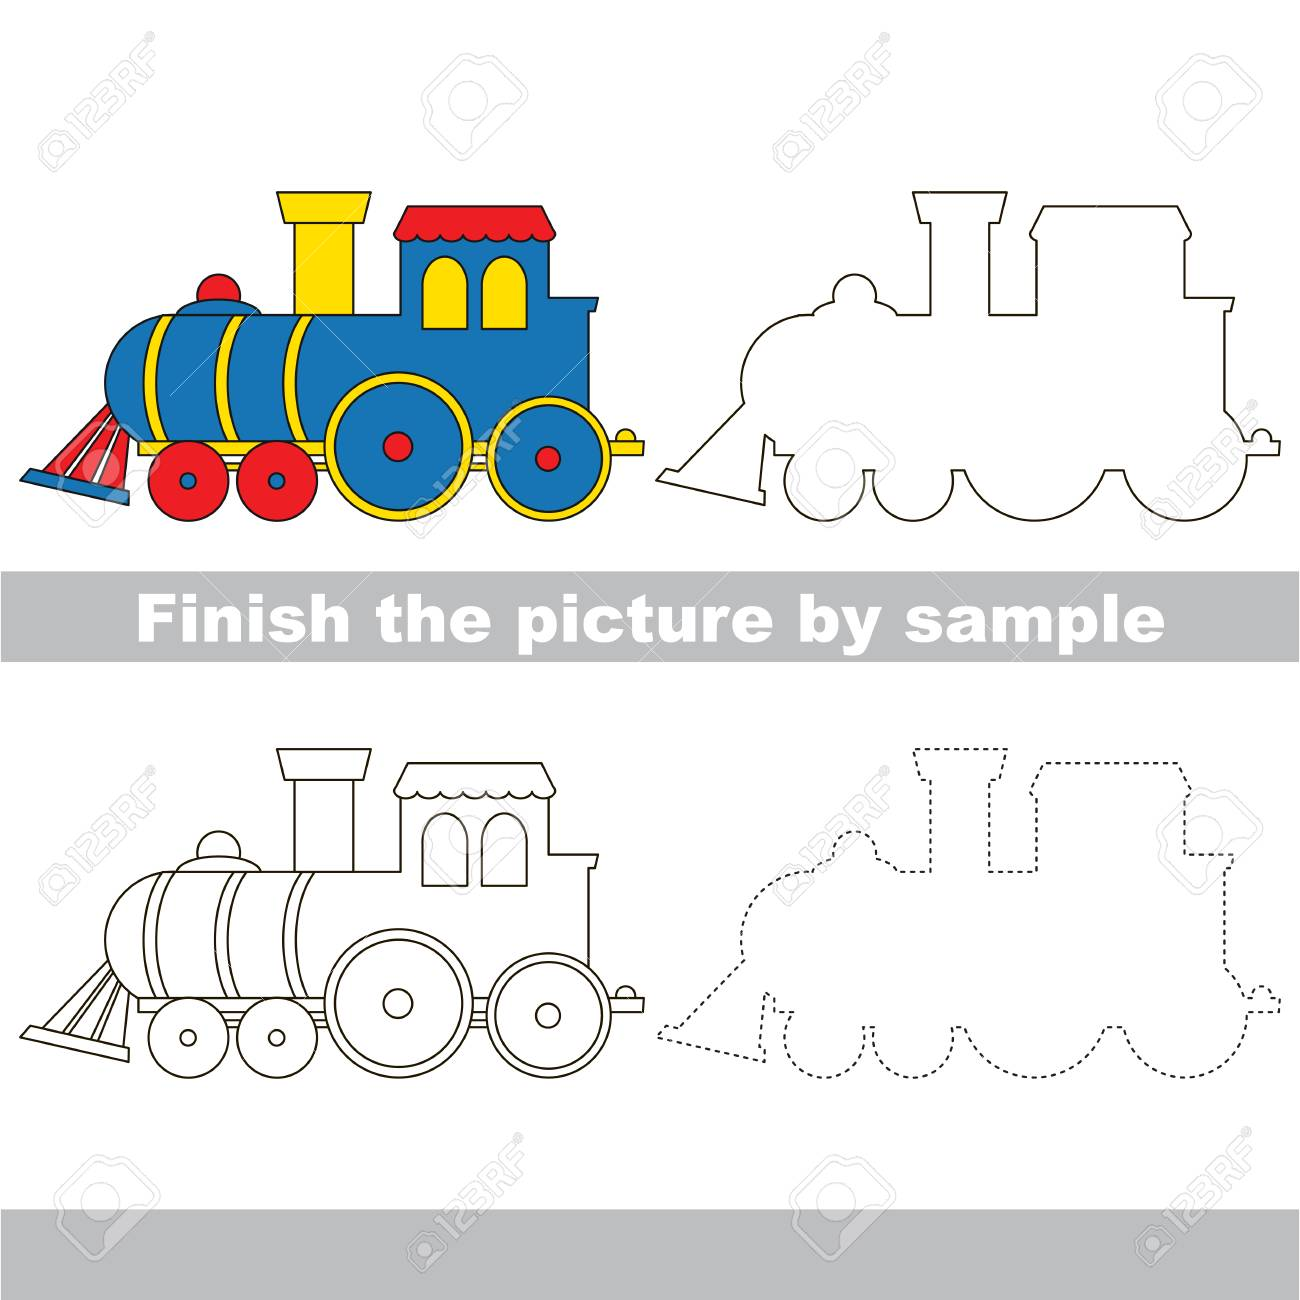 Drawing Worksheet For Children. Finish The Picture And Draw The ...